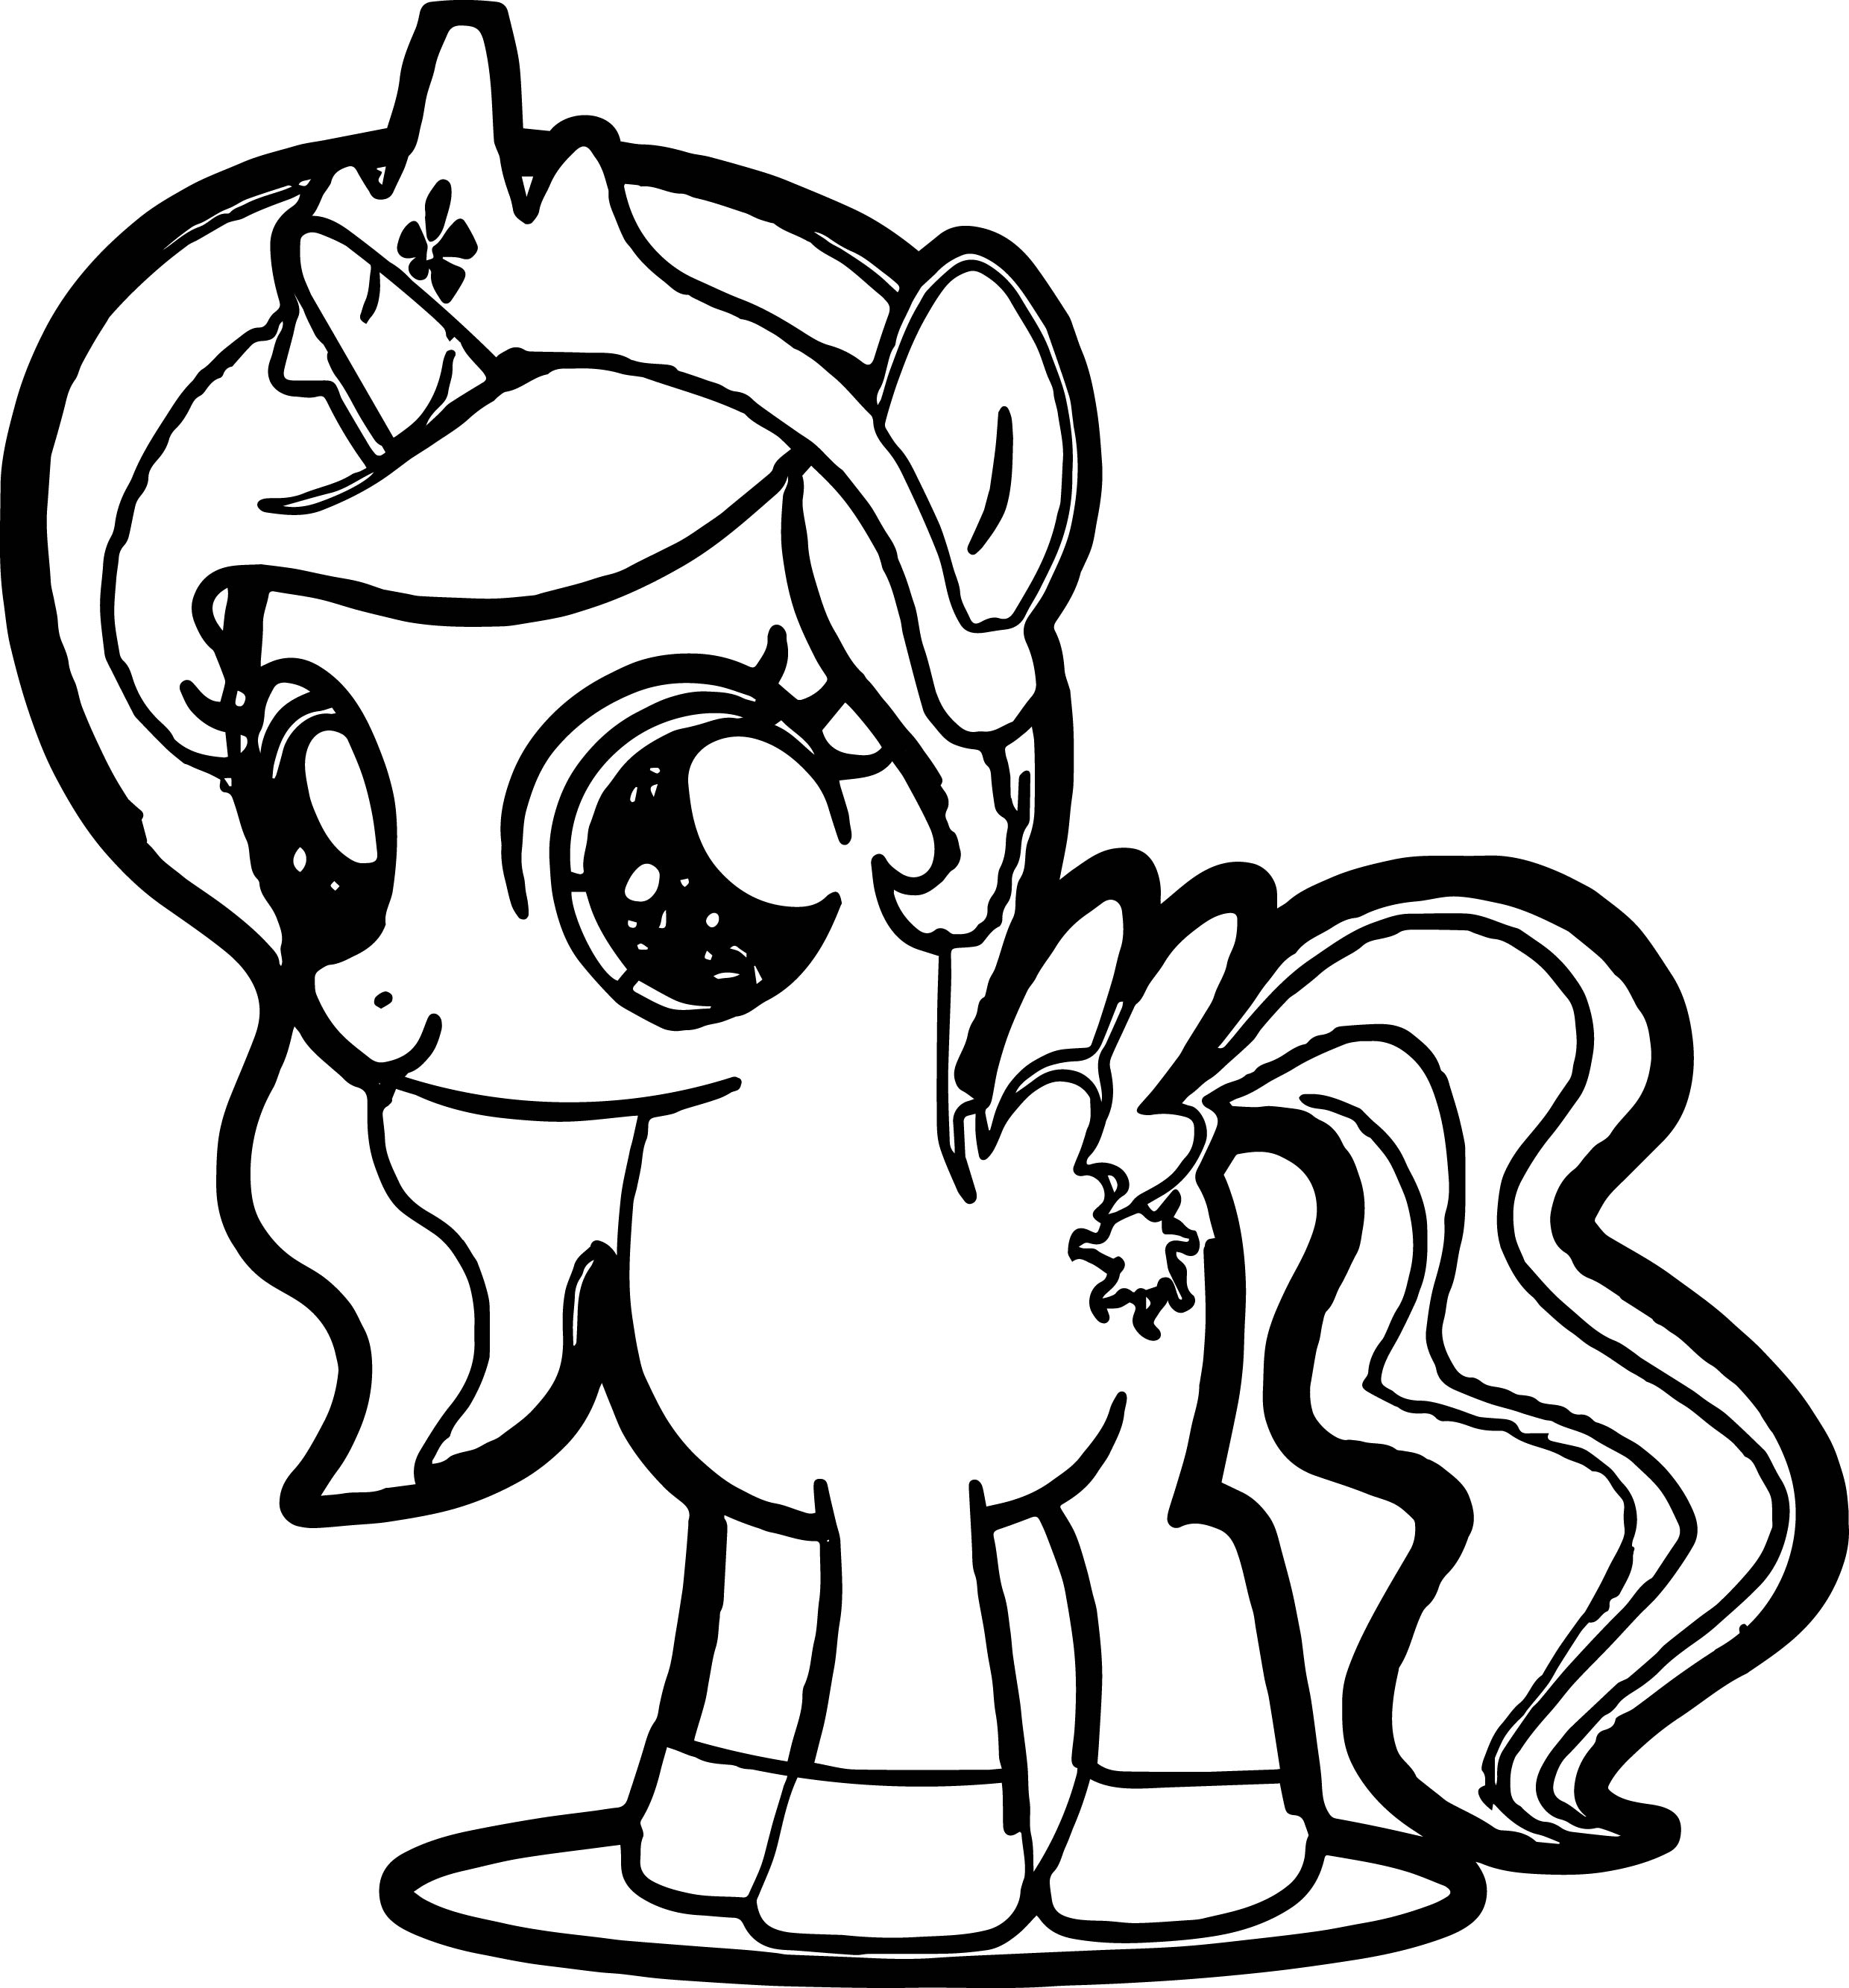 coloring page my little pony my little pony the movie coloring pages to download and little my pony page coloring